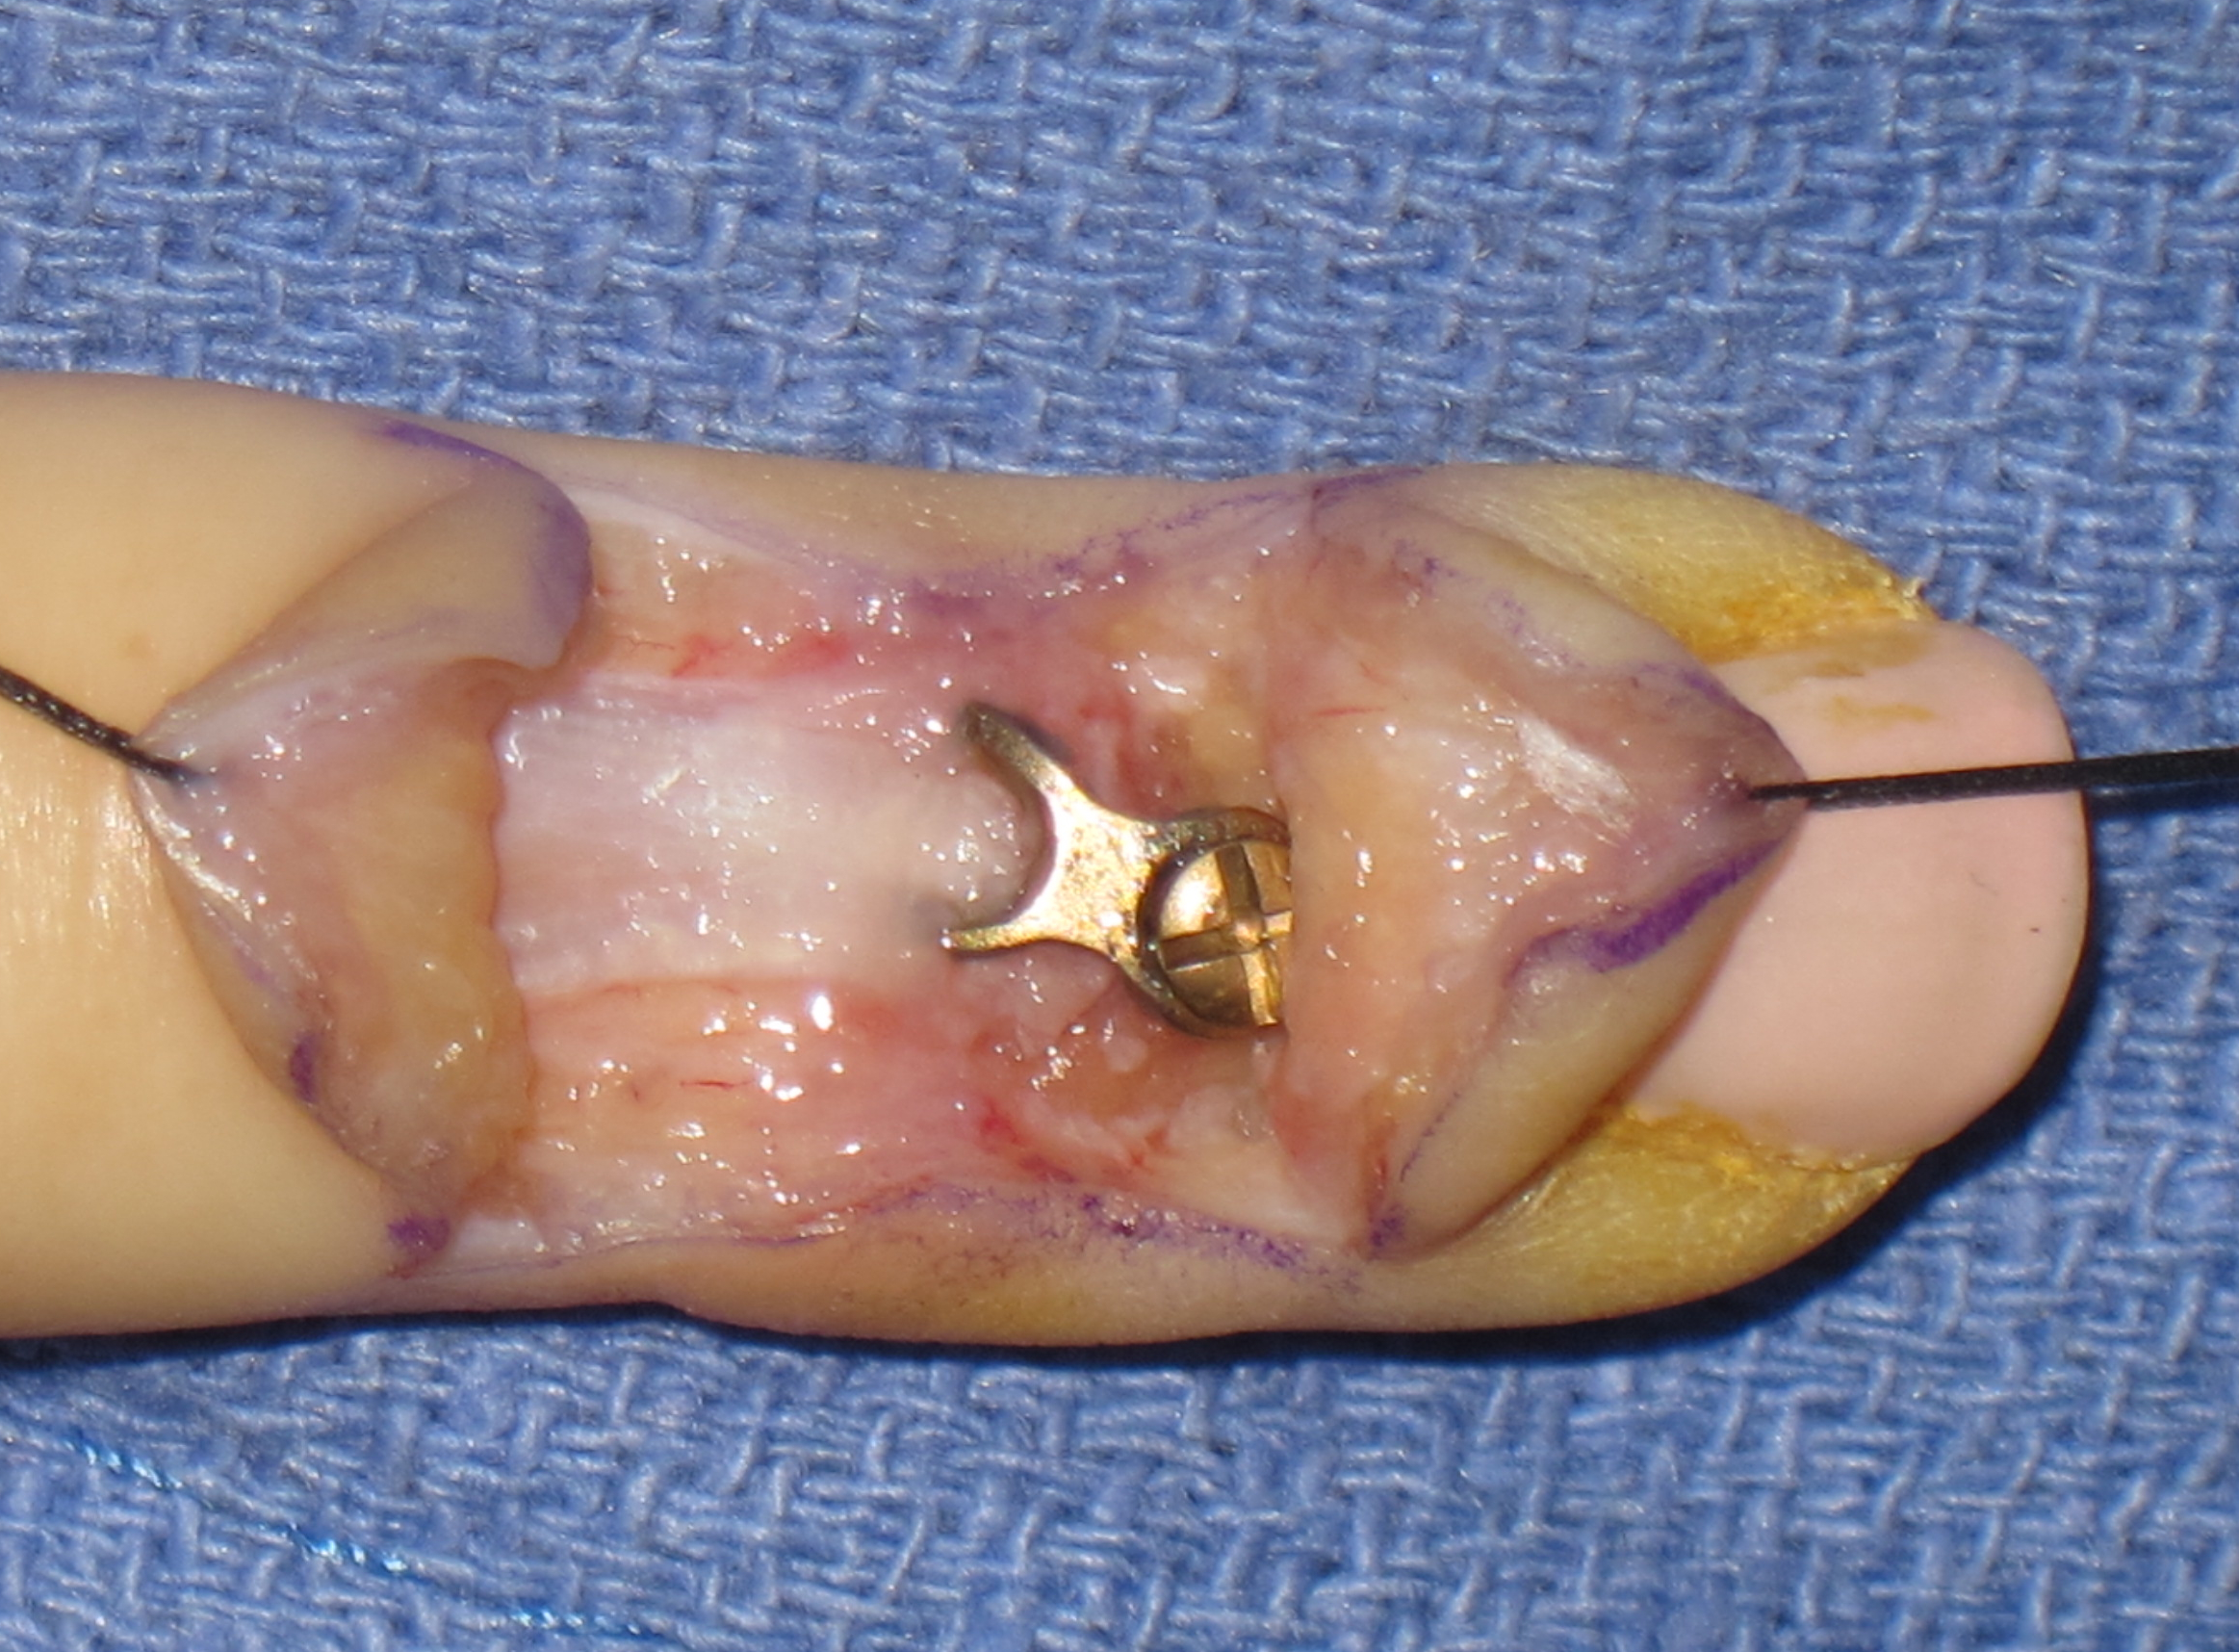 AAHS - New Method of Mallet Fracture Fixation using a Hook Plate ...